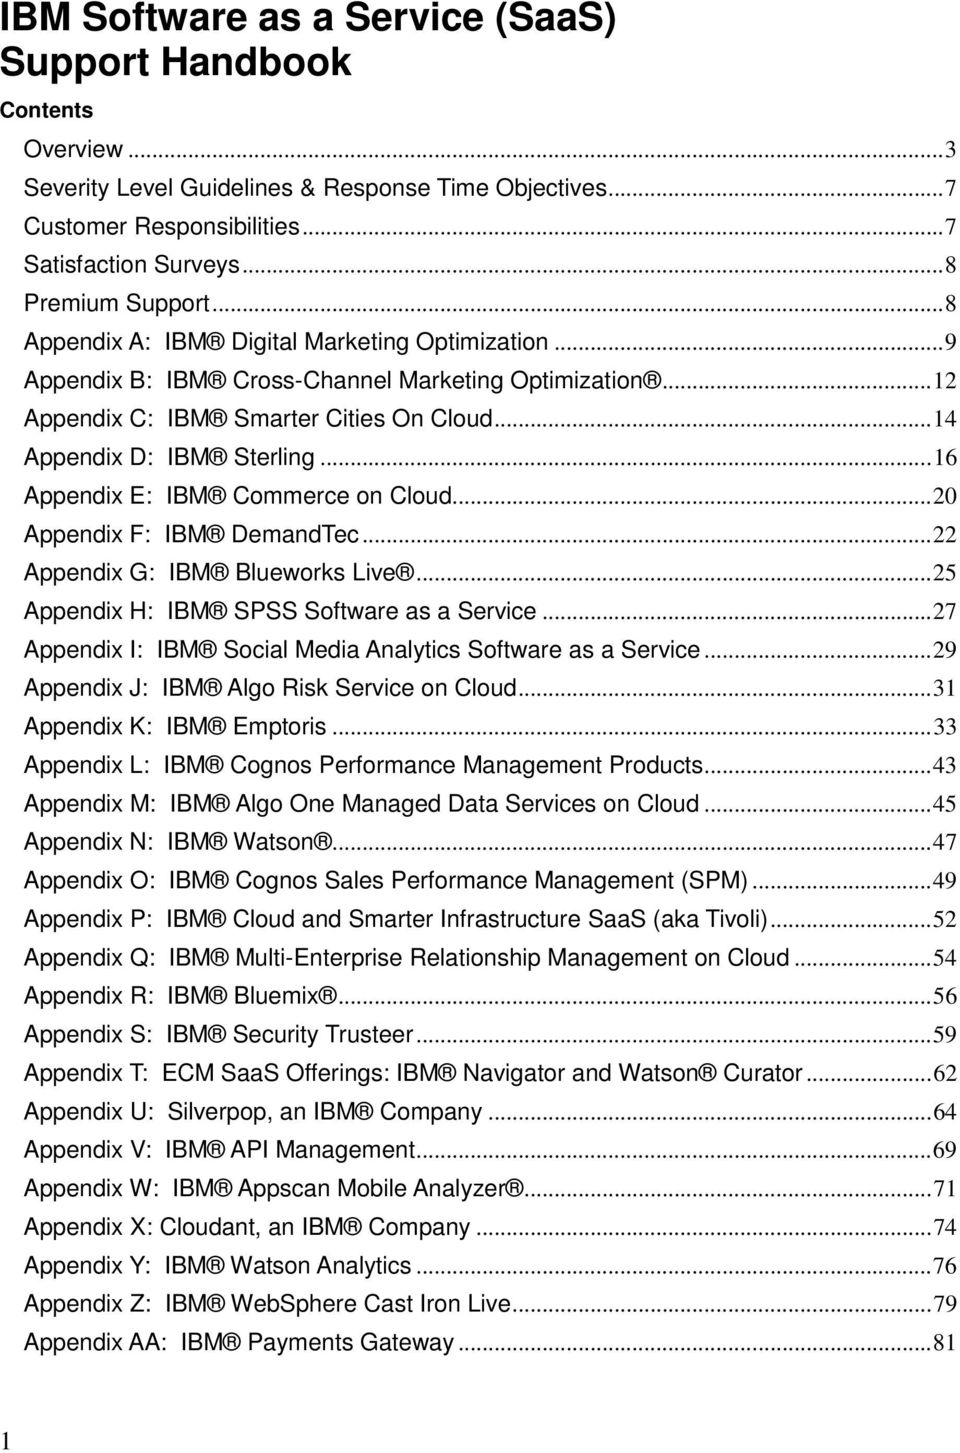 .. 14 Appendix D: IBM Sterling... 16 Appendix E: IBM Commerce on Cloud... 20 Appendix F: IBM DemandTec... 22 Appendix G: IBM Blueworks Live... 25 Appendix H: IBM SPSS Software as a Service.